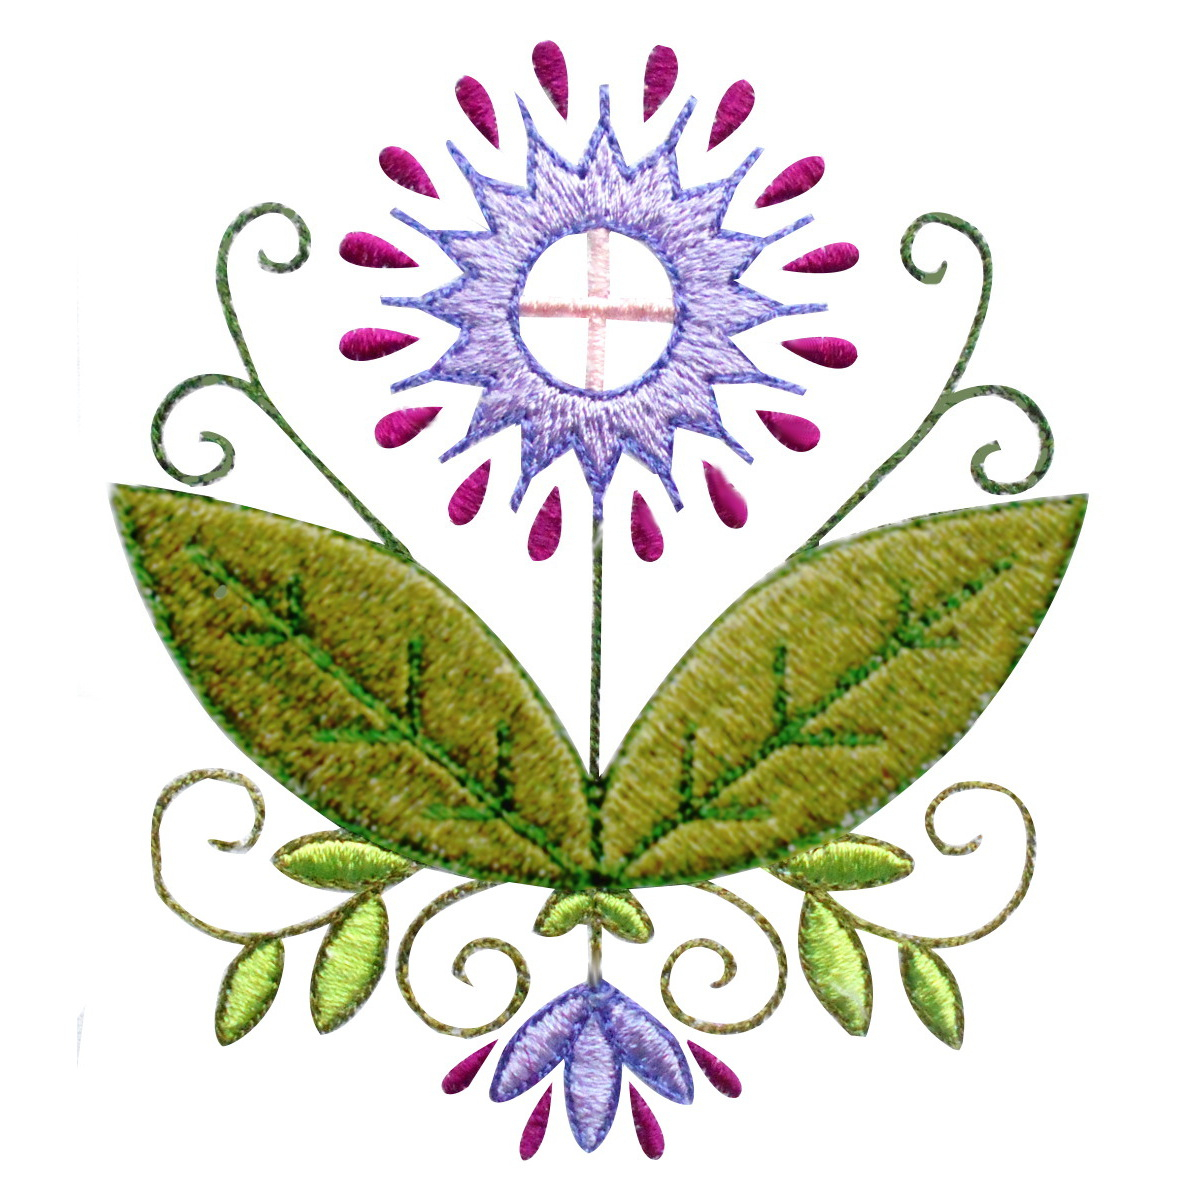 Scandinavian Embroidery Patterns Floral Machine Embroidery Designs